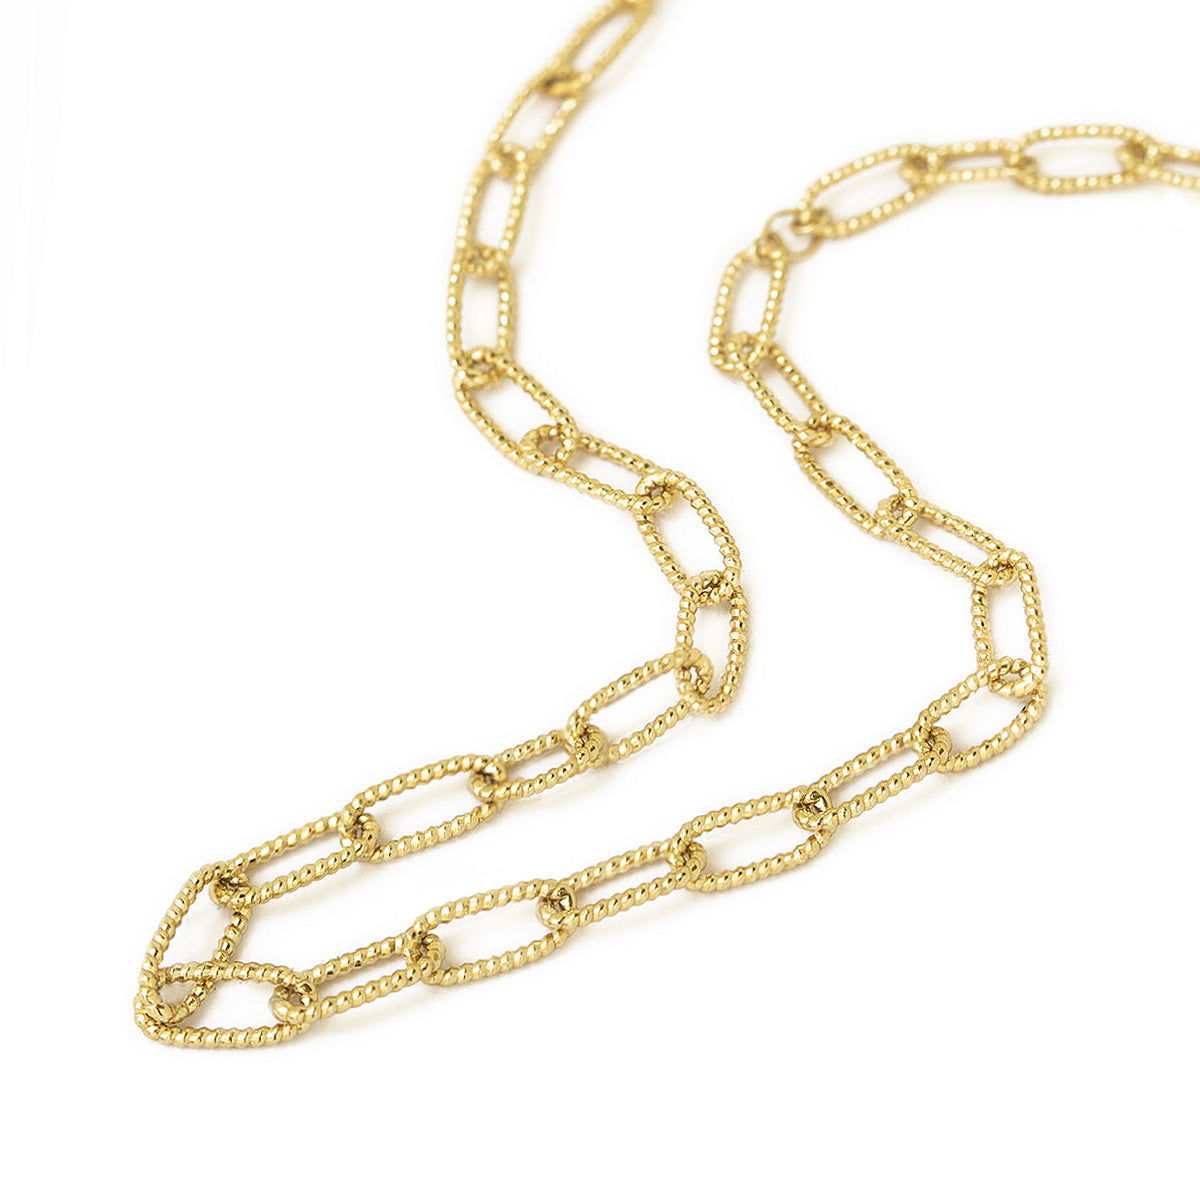 Textured Gold Chunky Link Chain Necklace